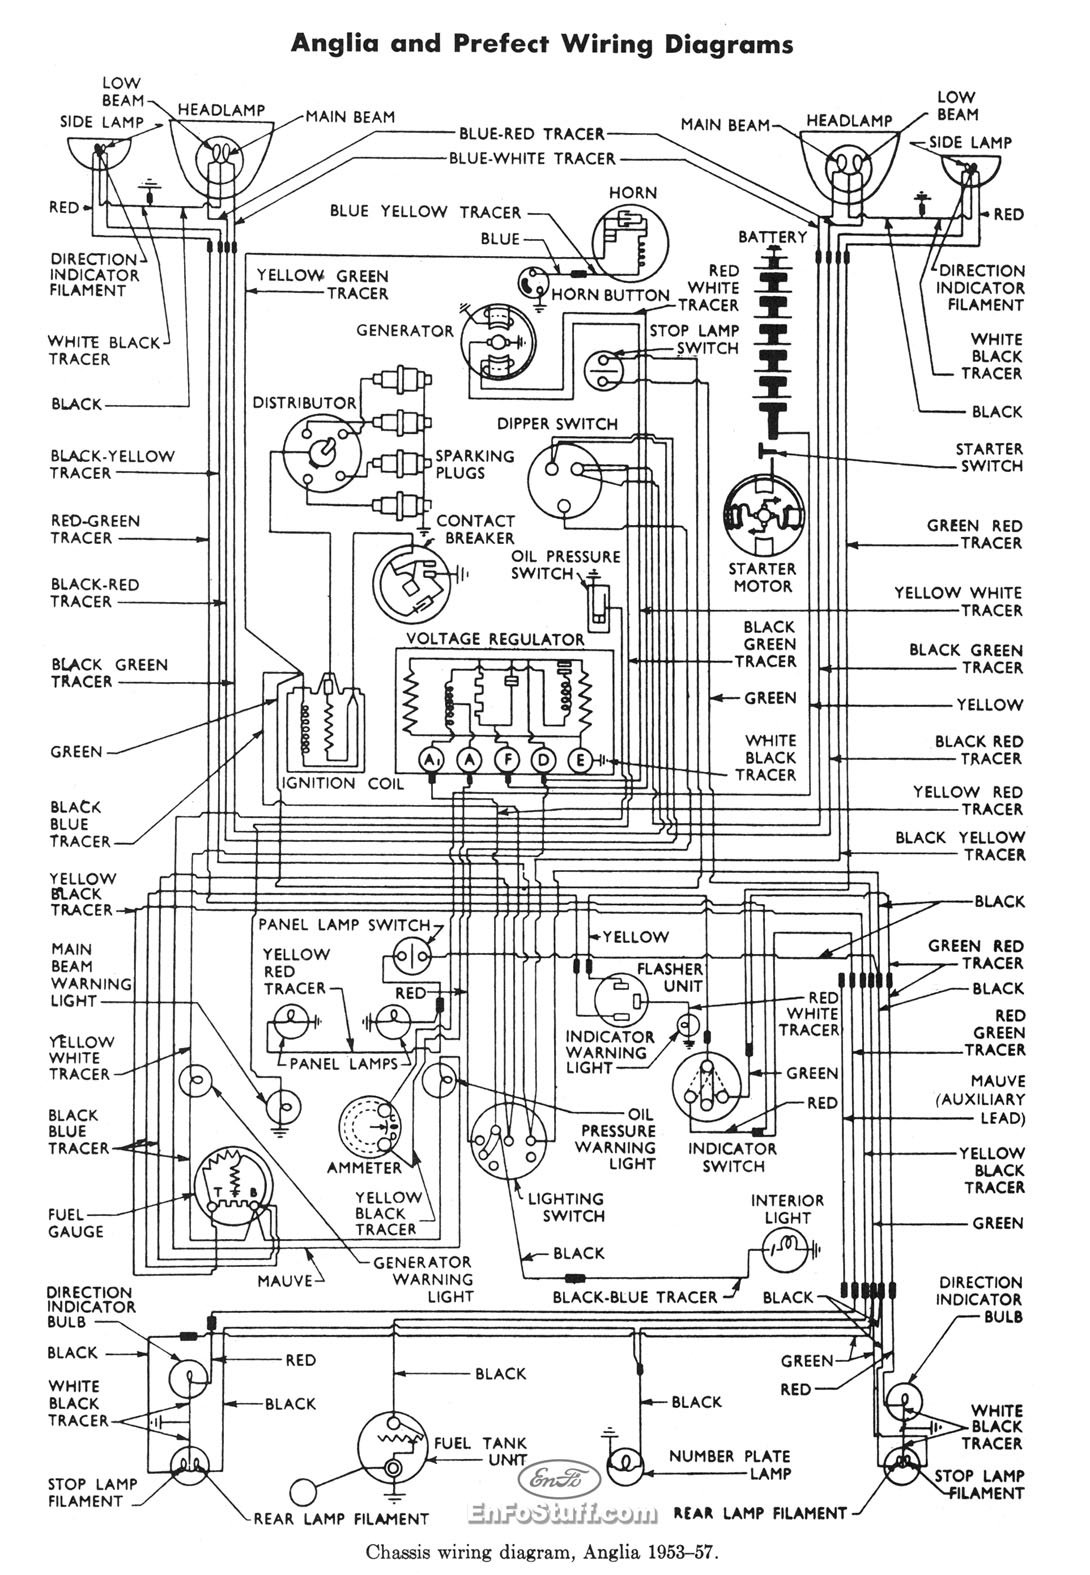 ford anglia 1953 57 wiring diagram wiring diagram for ford anglia 1953 57 ford wiring schematics at bayanpartner.co